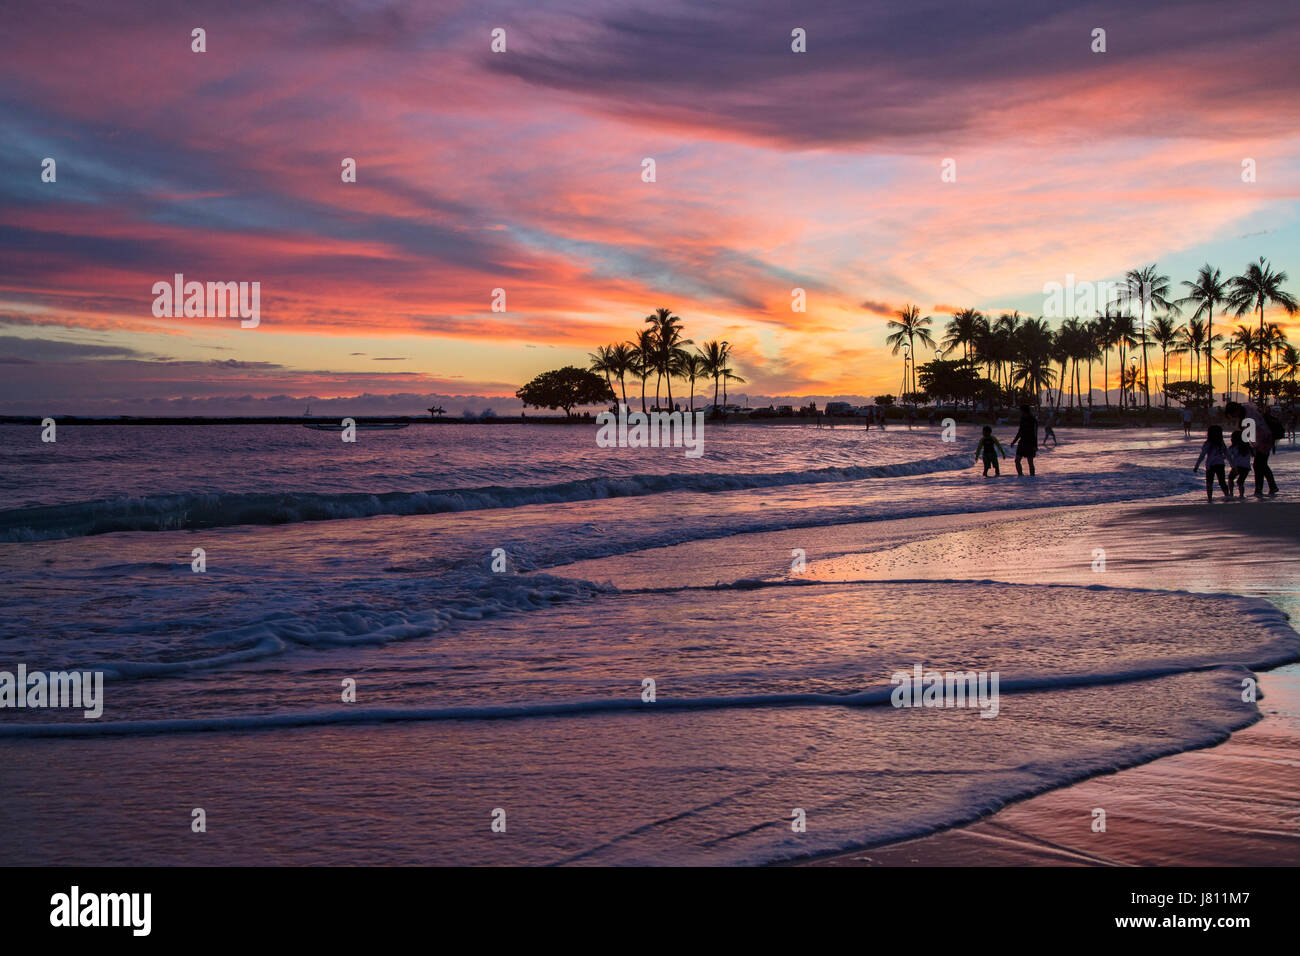 Colorful sunset from the beach in front of the Hilton Hawaiian village on Waikiki Beach in Oahu. - Stock Image